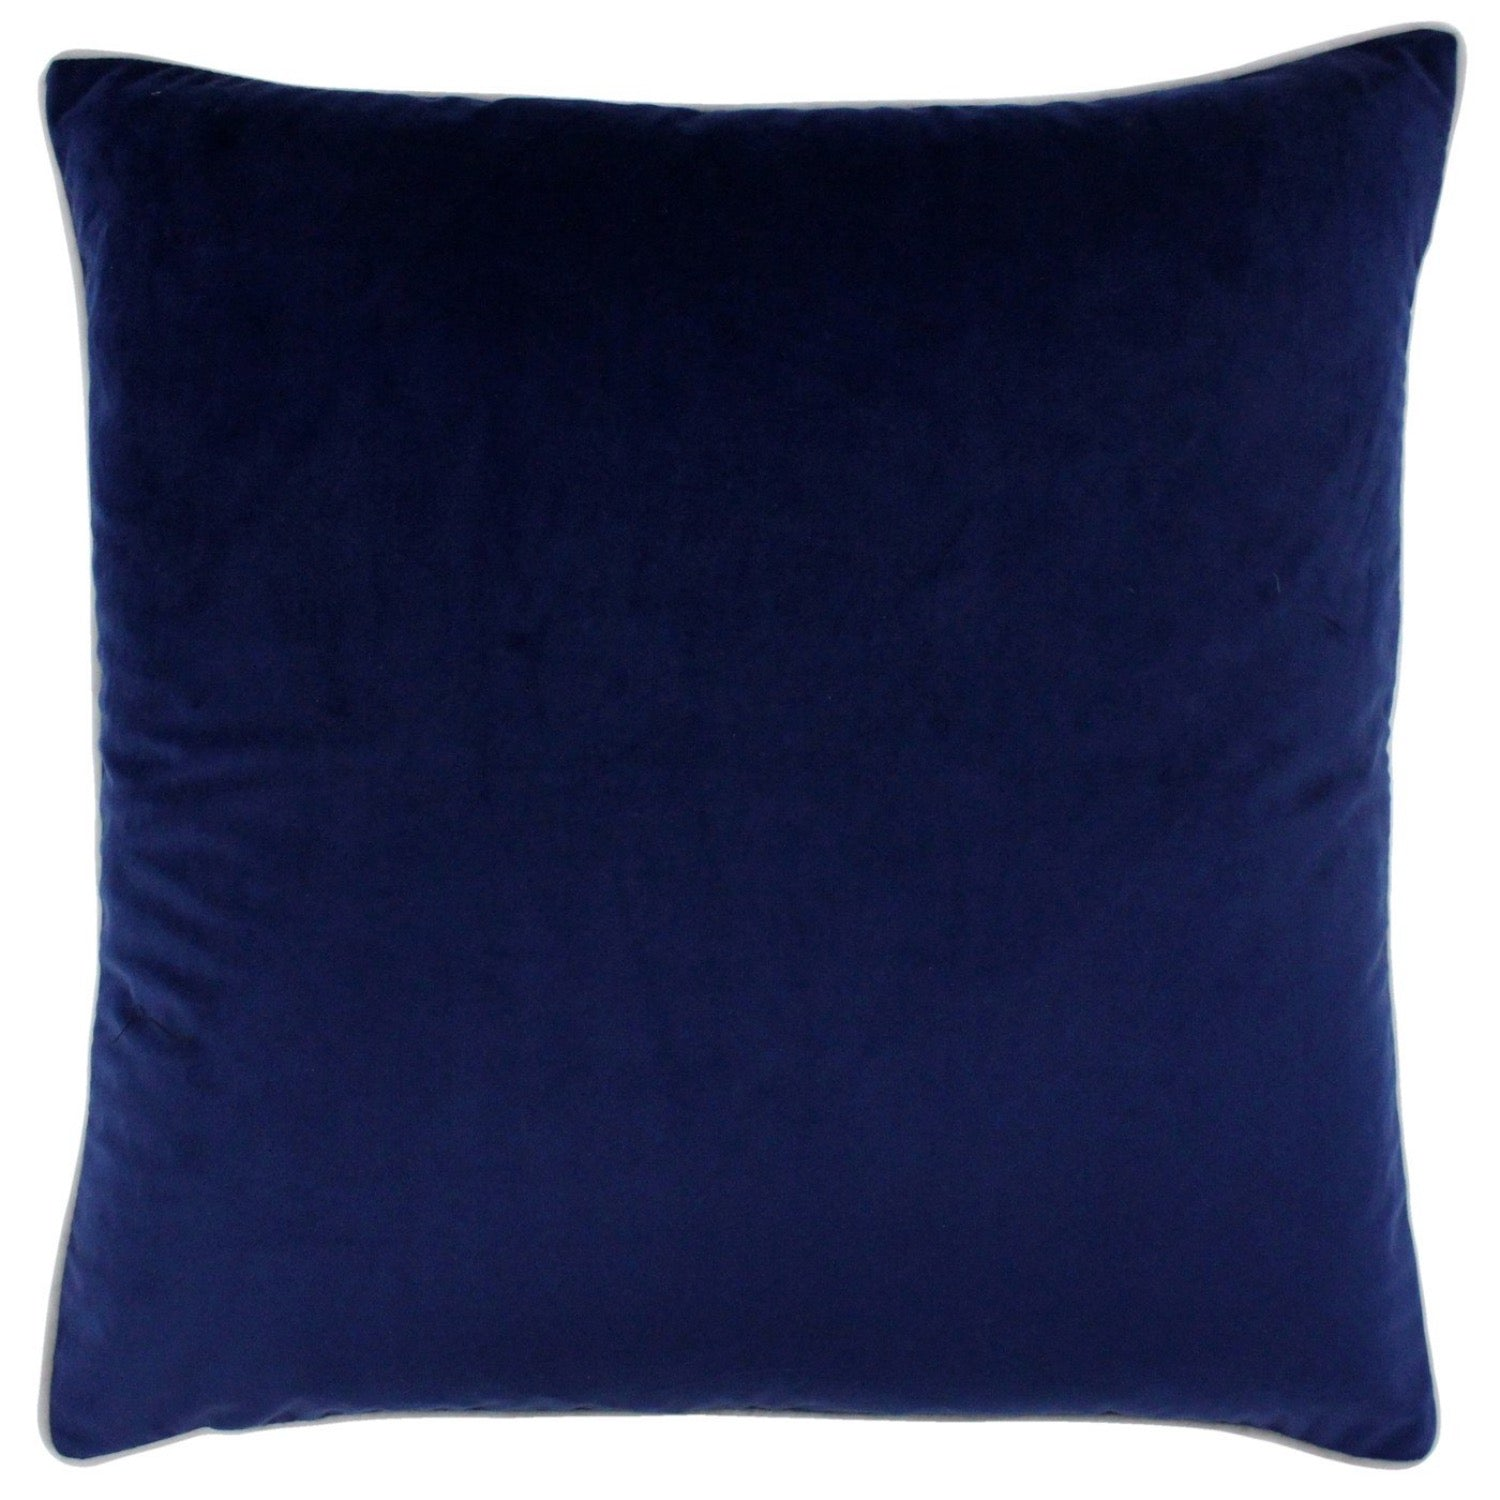 Meridian Velvet Cushion - Navy/Silver